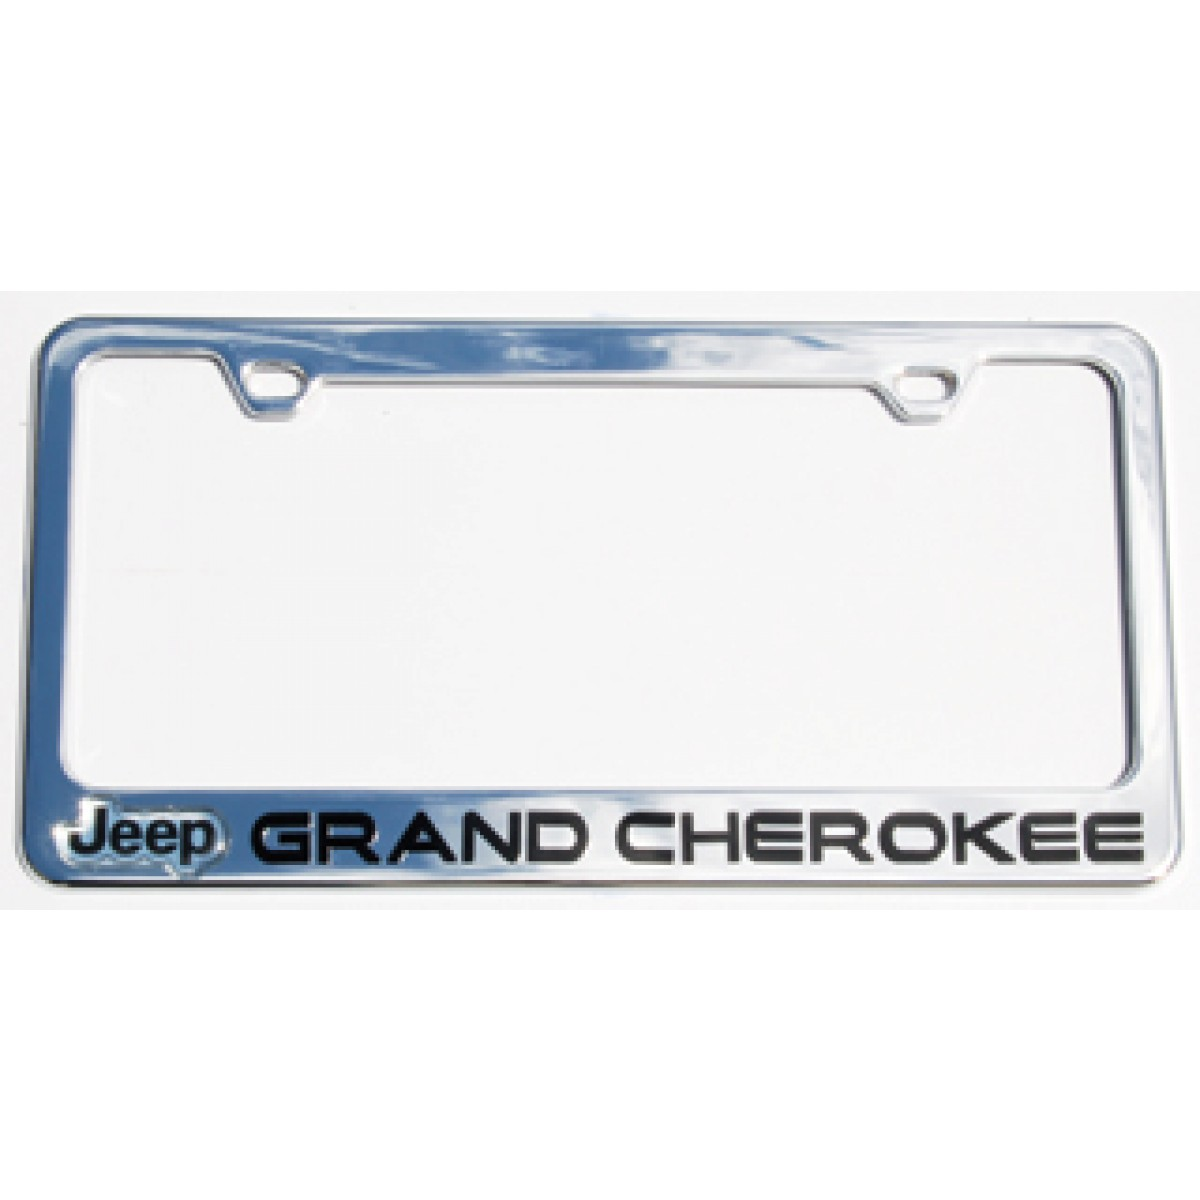 jeep license plate frames accessories jcwhitney 2016 car release. Cars Review. Best American Auto & Cars Review